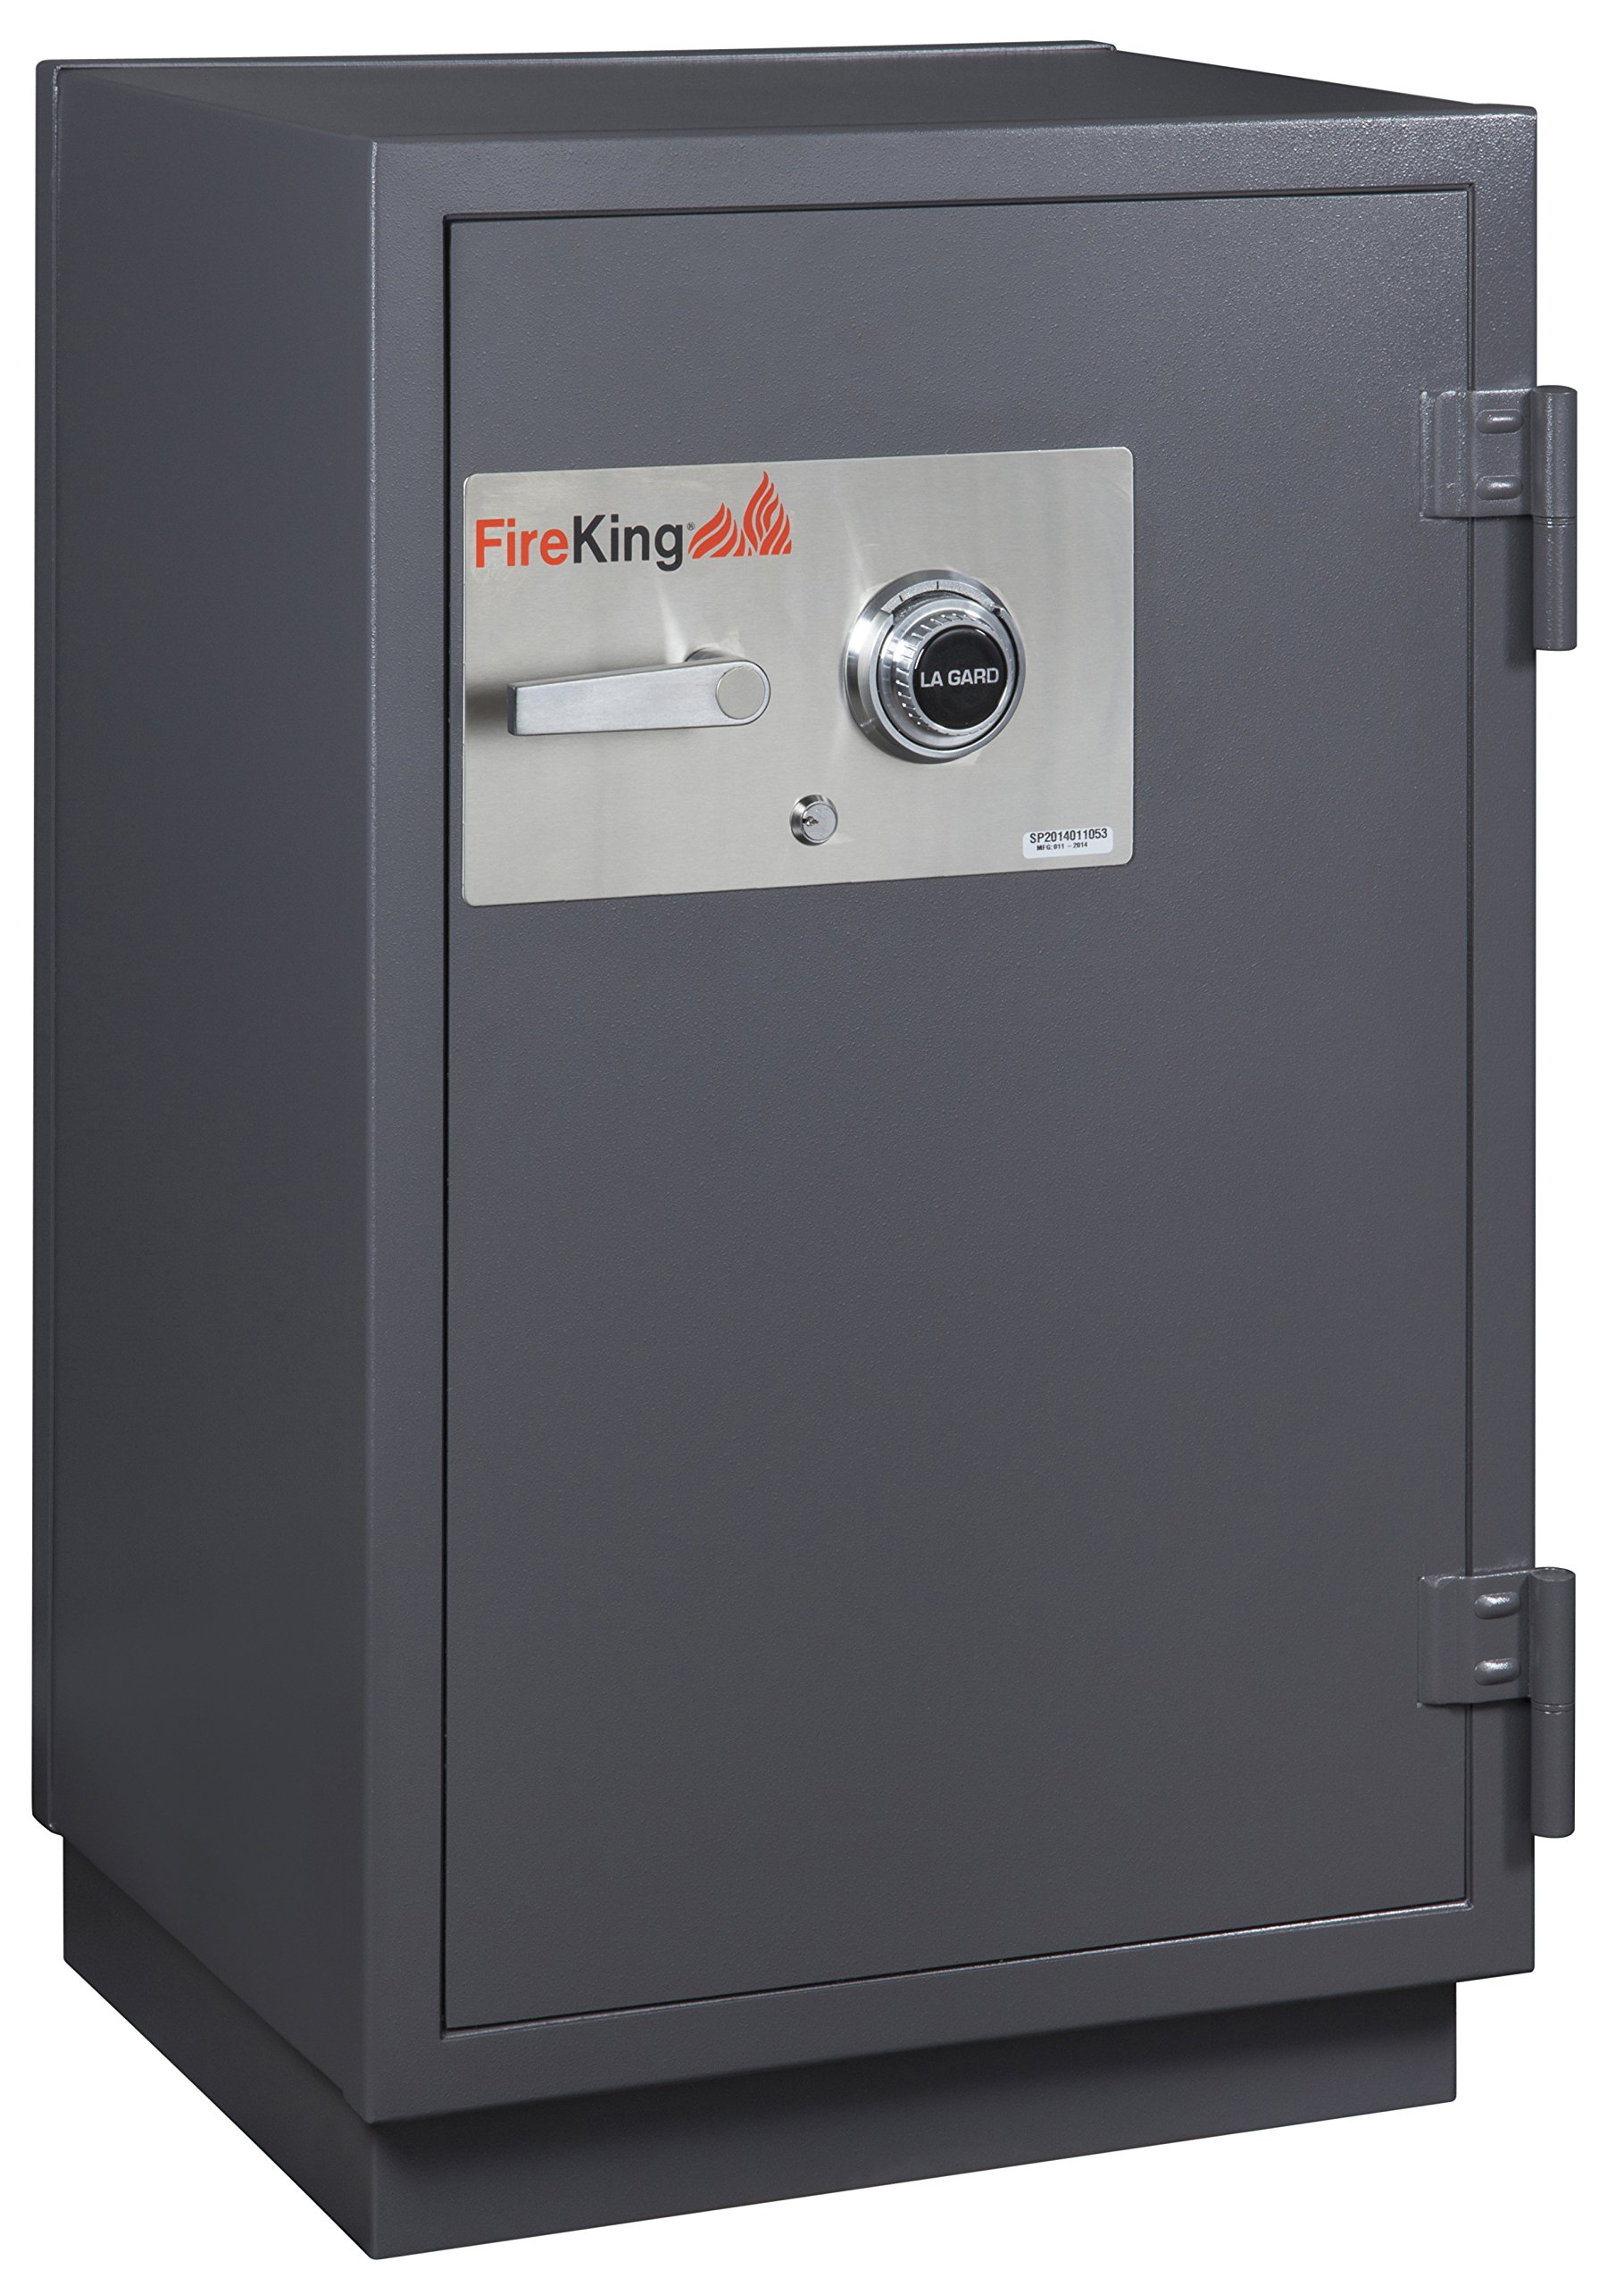 Fireking 2-Hour Fire with Impact & Burglary Rated Safe, 41.13'' H x 25.5'' W x 22.88'' D/4.9 cu. ft., Graphite